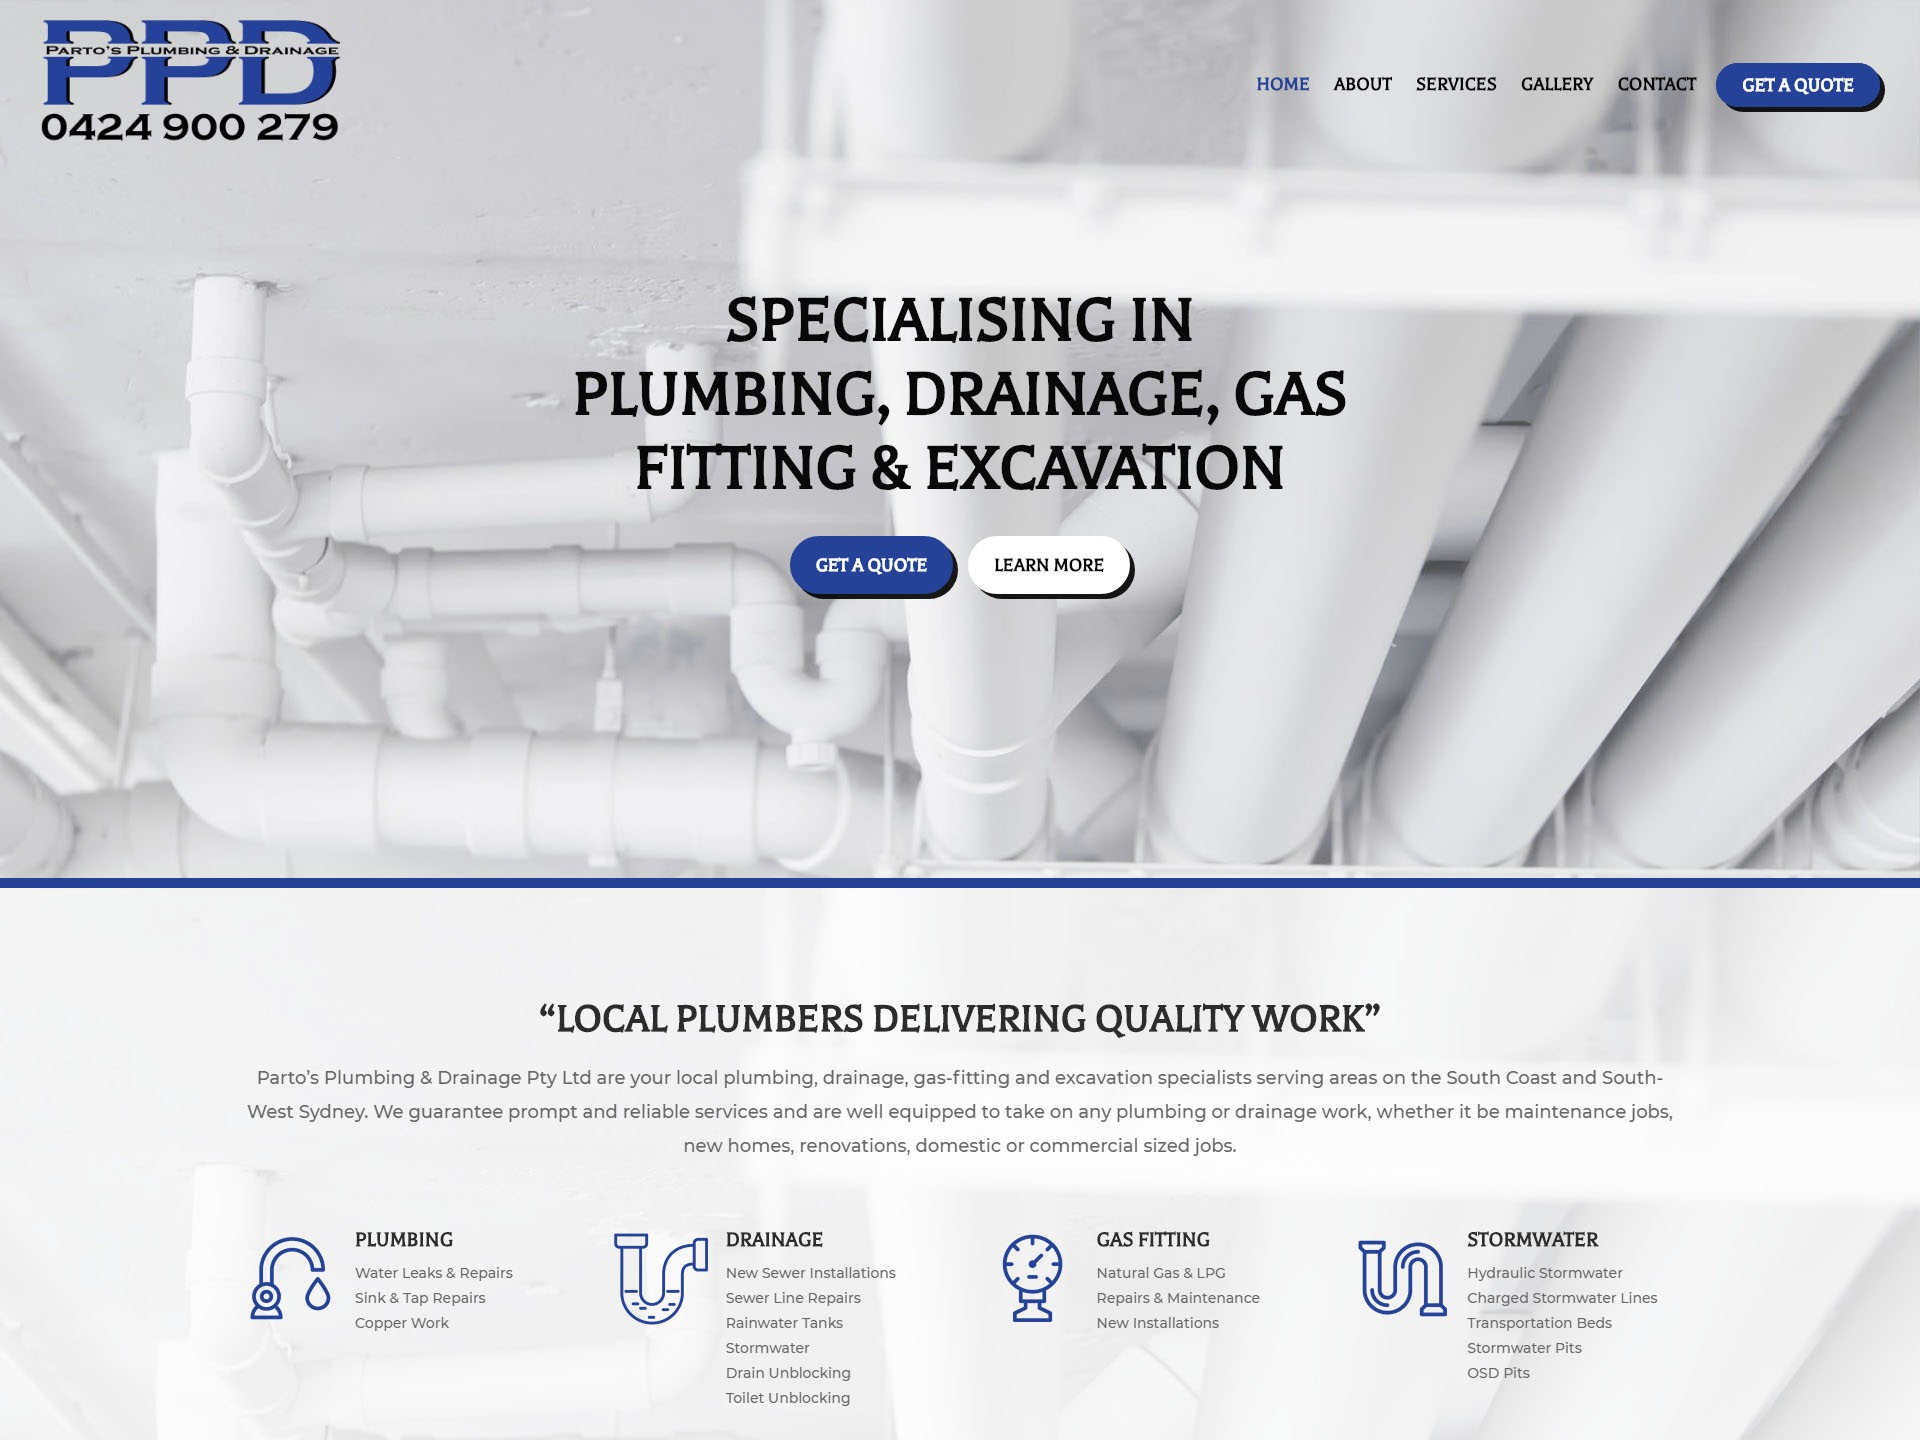 Parto's Plumbing & Drainage | Top-Rated Wollongong Plumber